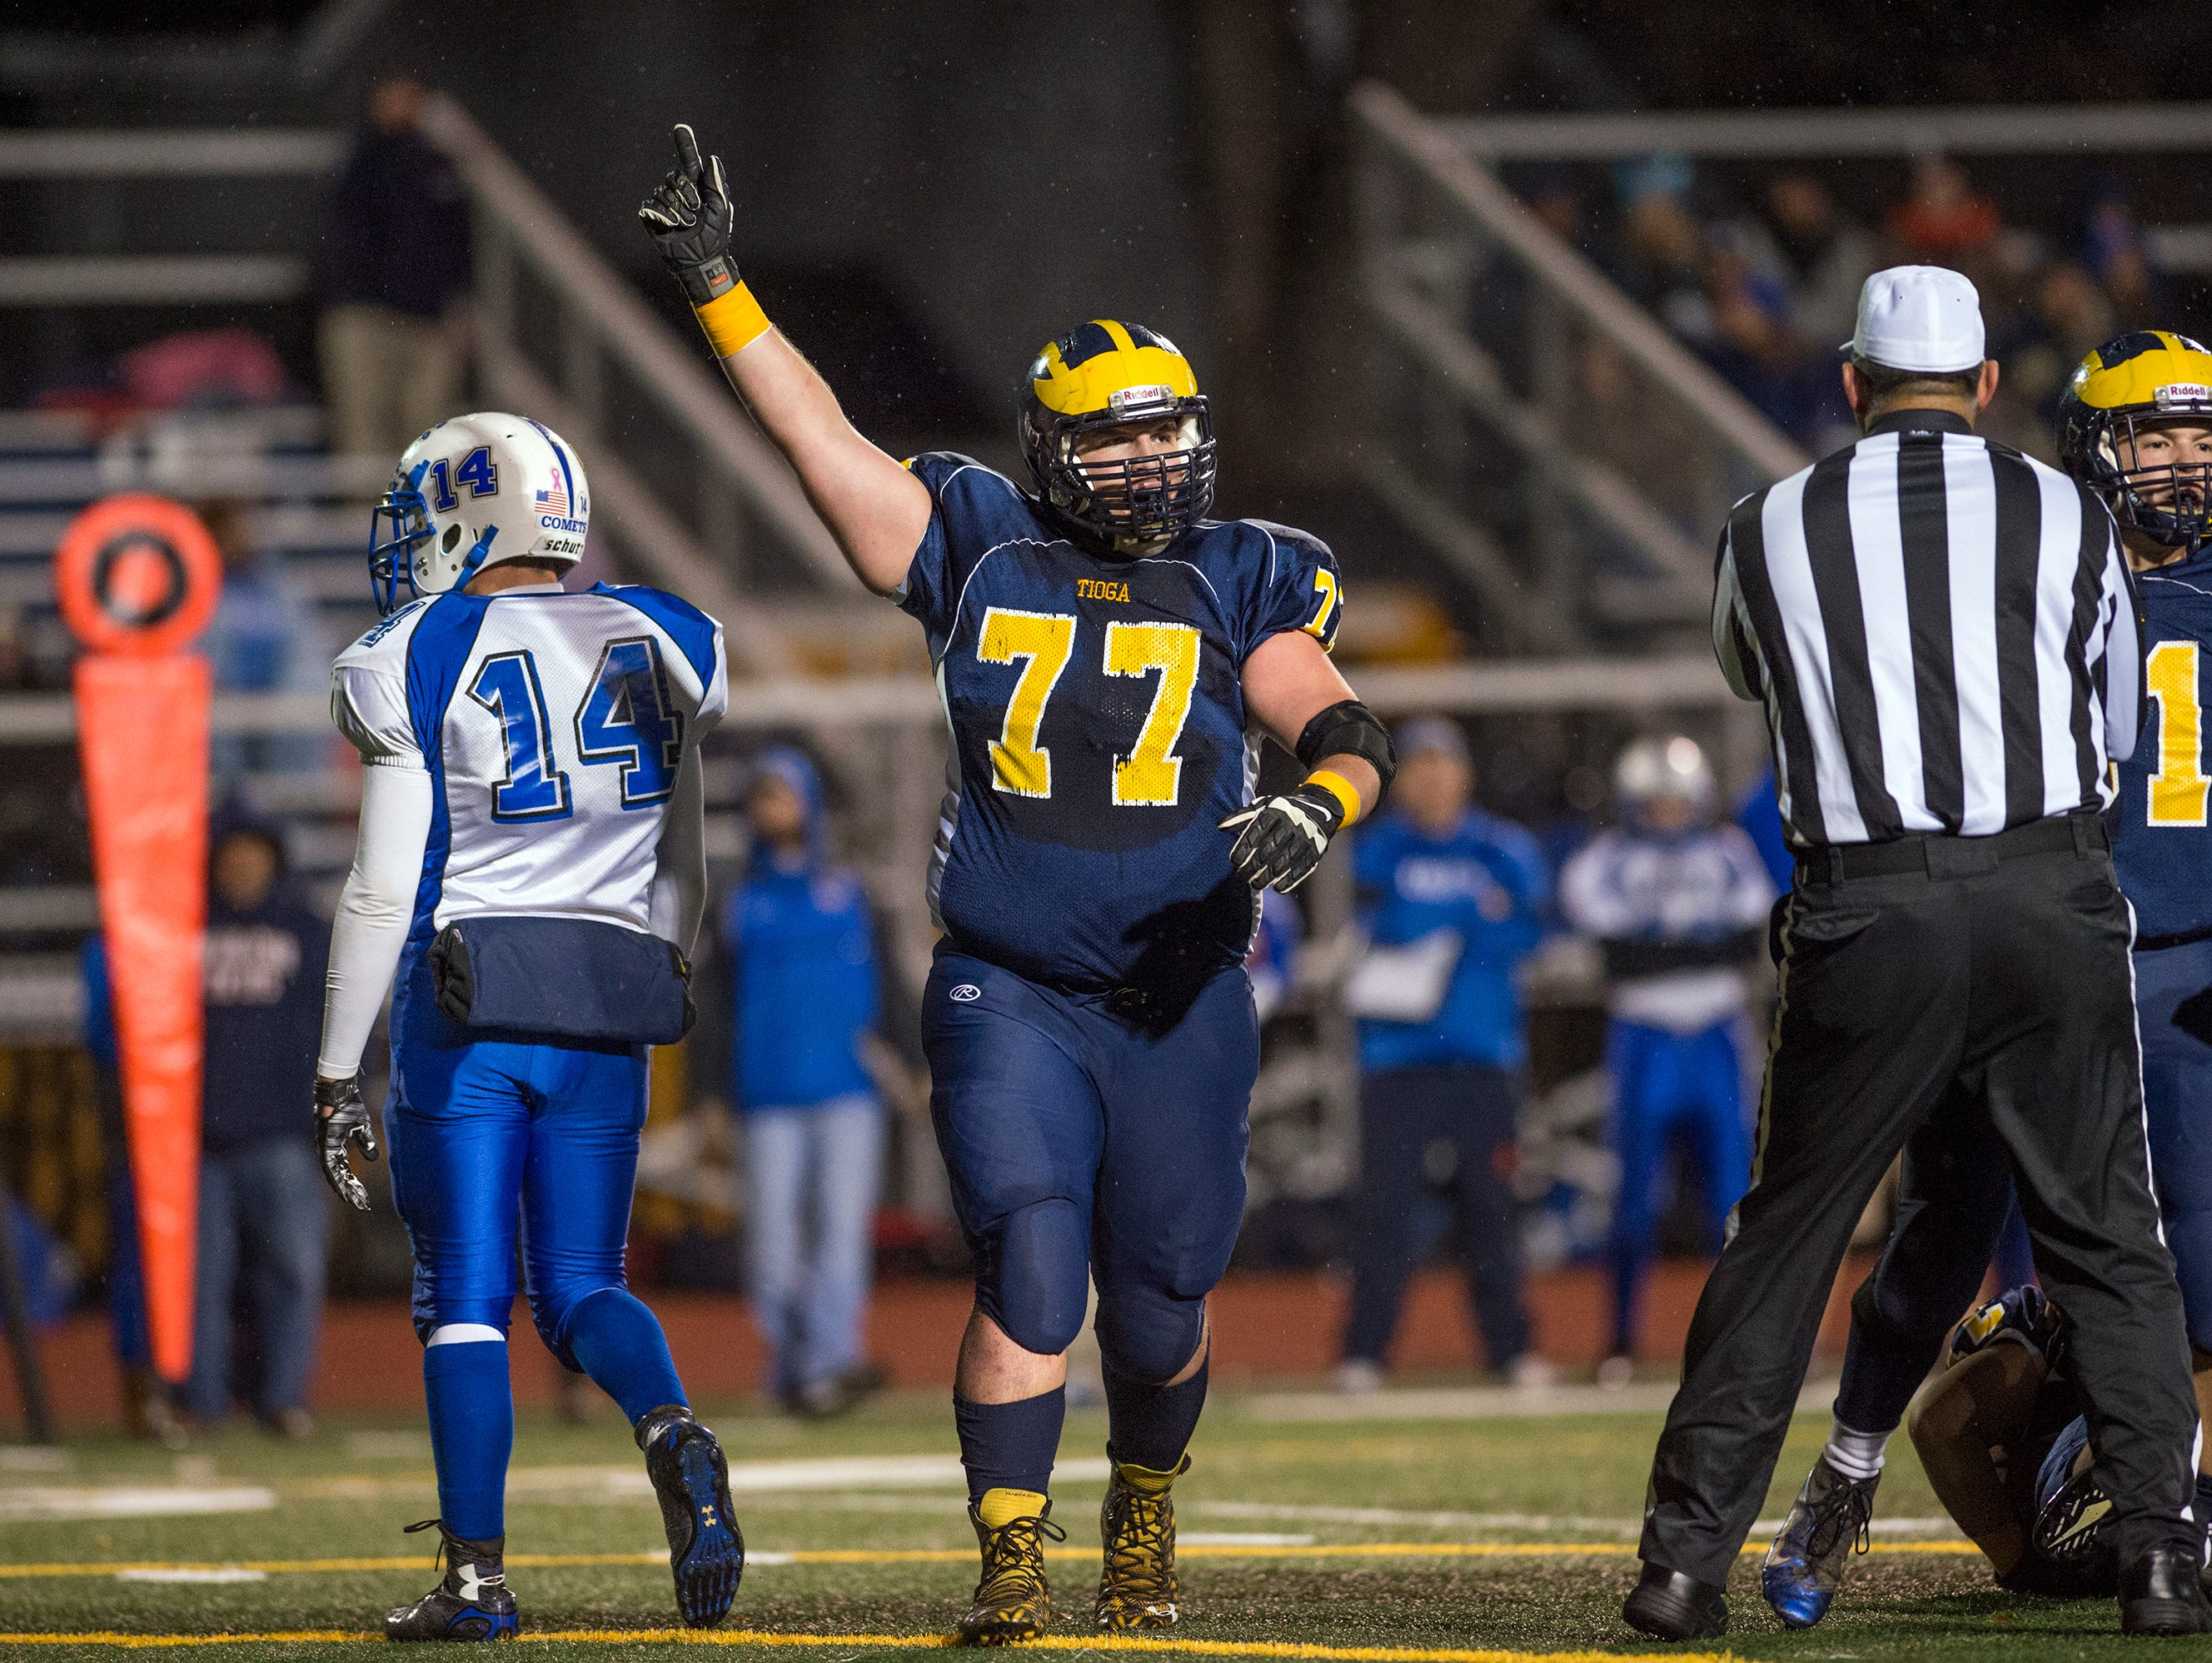 Tioga defensive lineman Hunter Boyle celebrates after the Tigers recovered a fumble during the first quarter against Sandy Creek in the Class D state playoff quarterfinal game at Binghamton Alumni Stadium on Friday, Nov. 13, 2015.